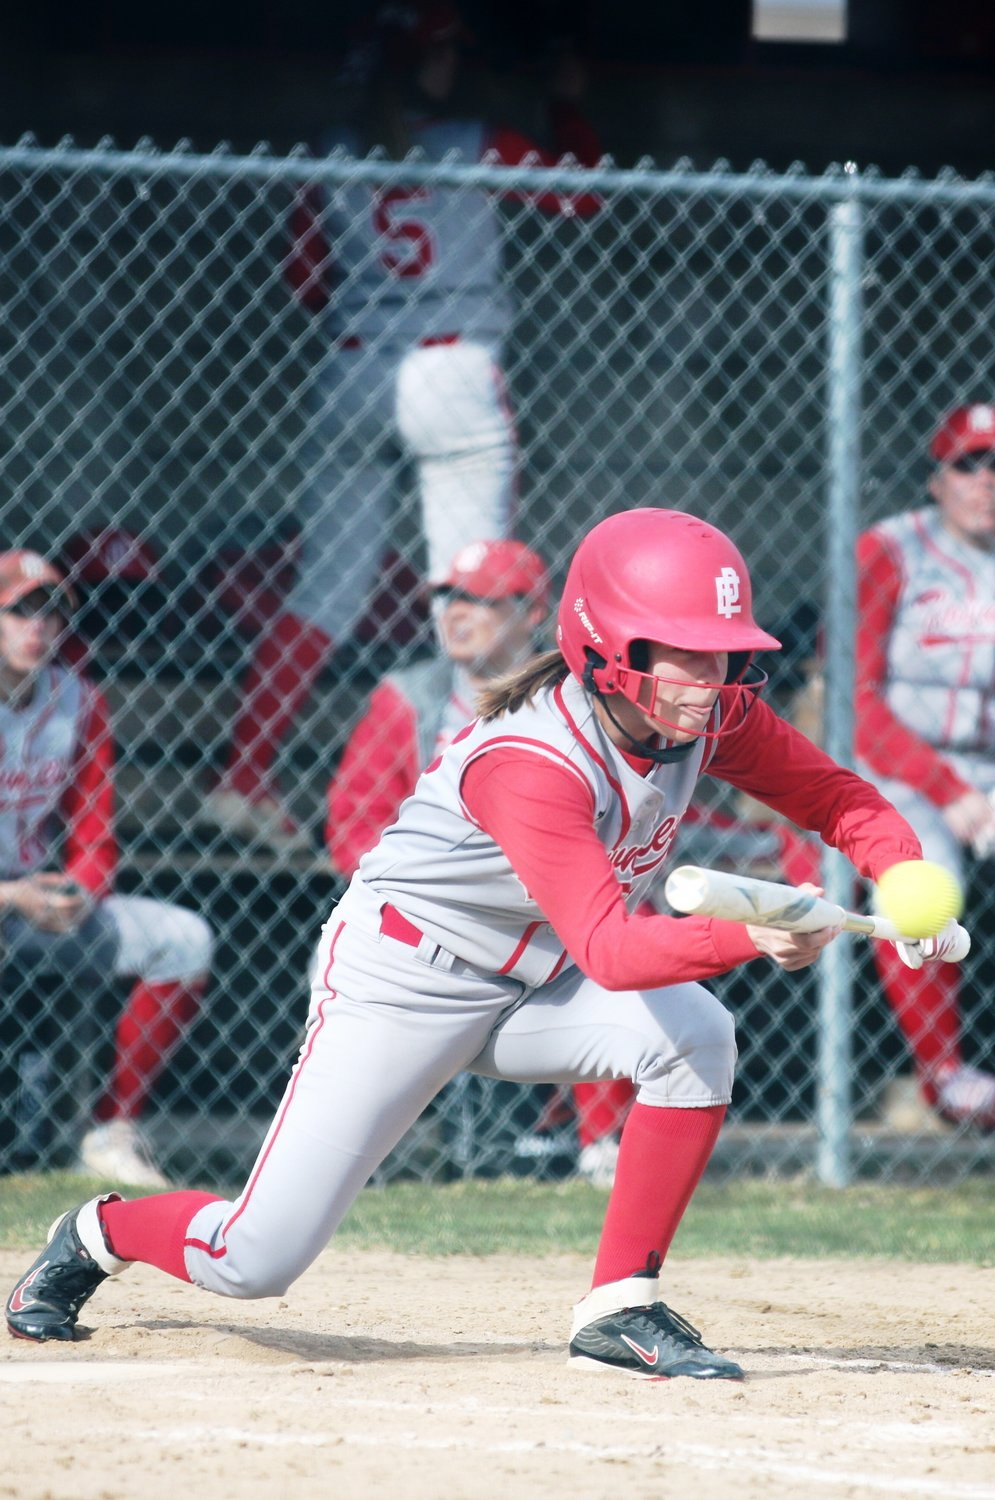 Paige Messier bunting for the Townies in recent softball action.